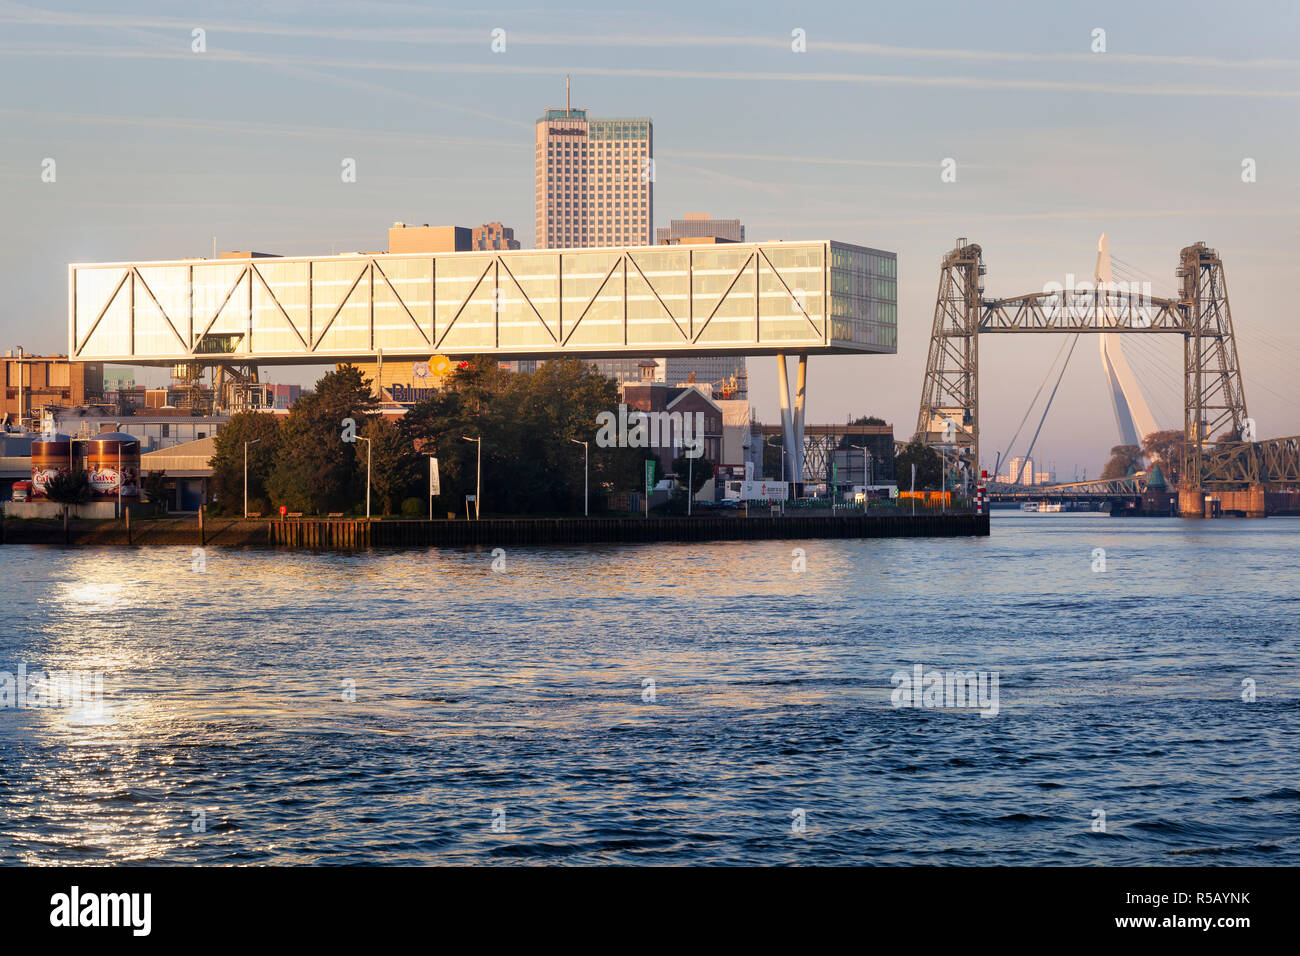 Rotterdam, Netherlands – October 5, 2018: Unilever building Rotterdam with bridge De Hef and the Erasmus bridge in the background - Stock Image